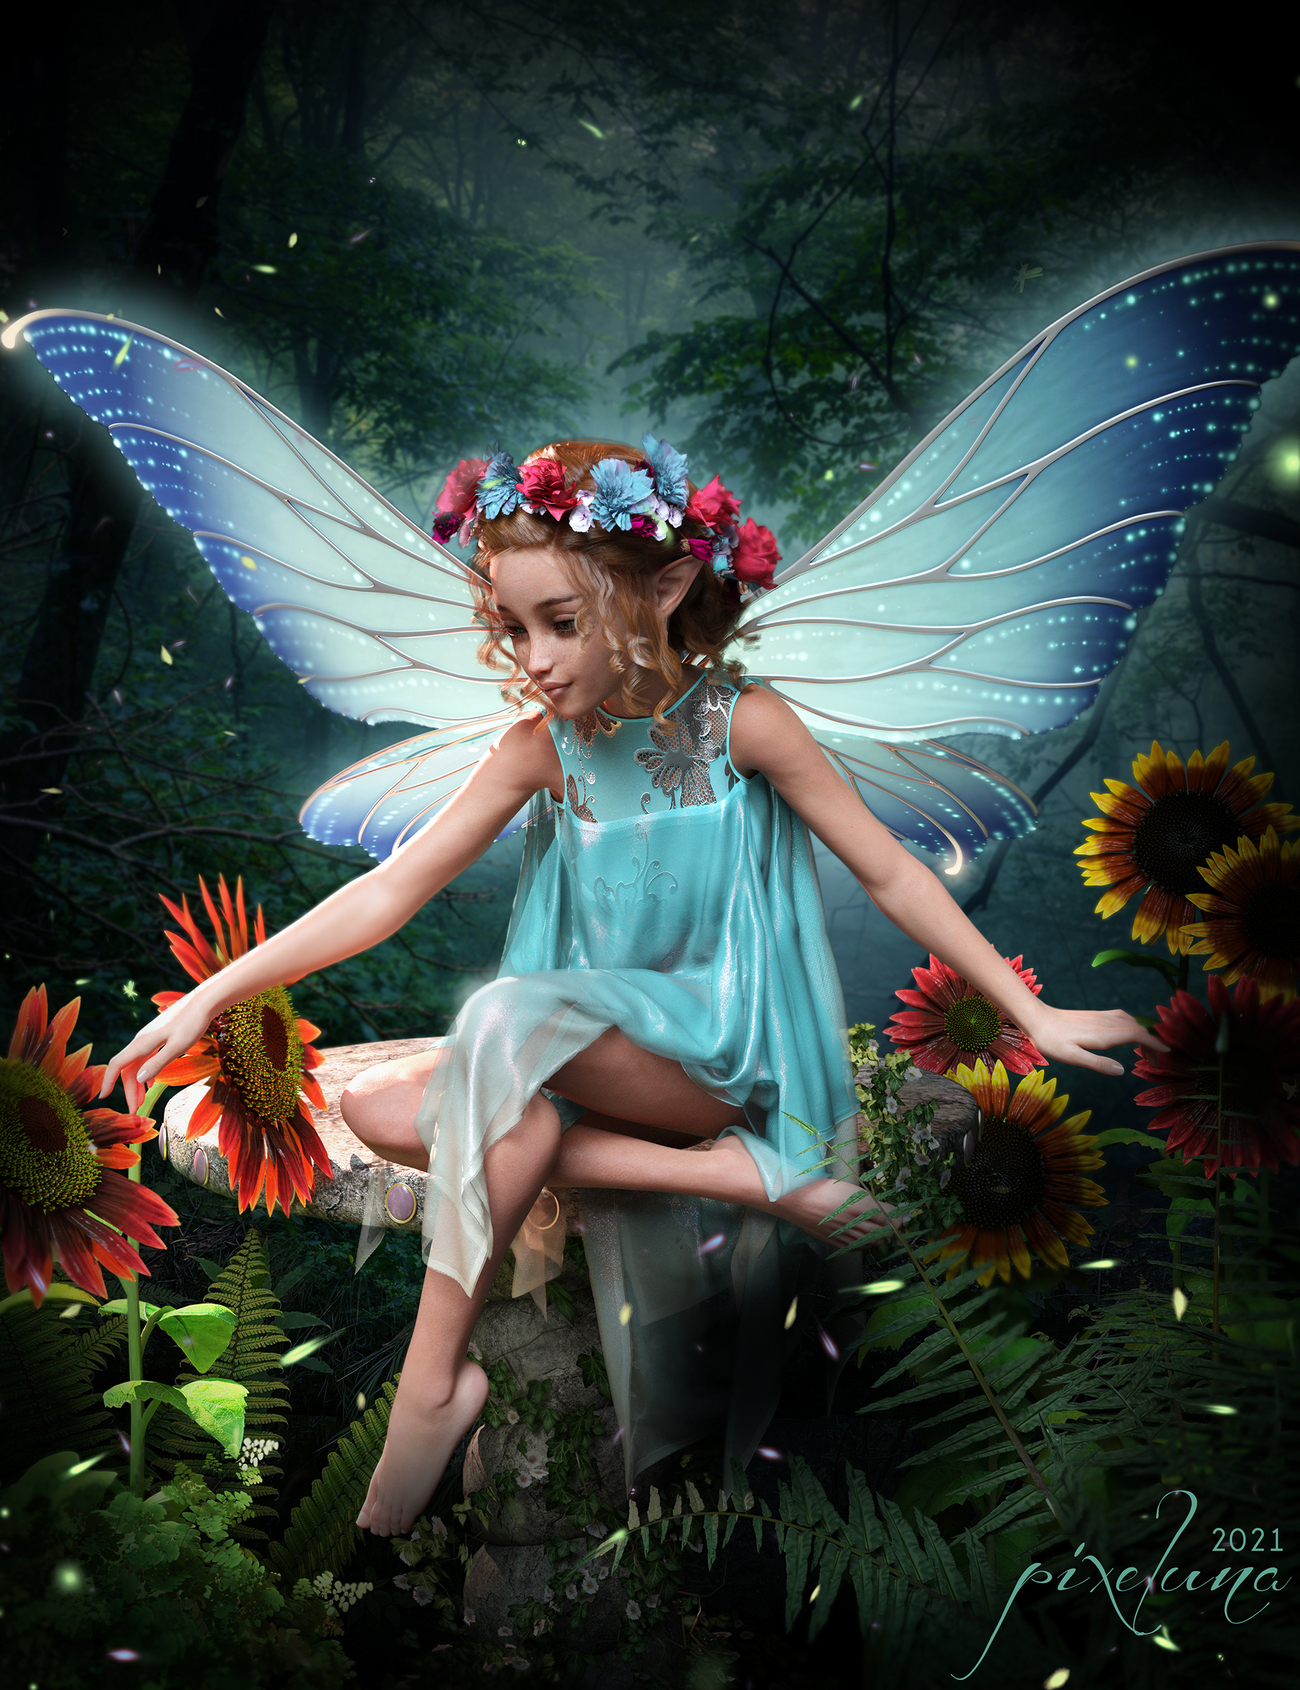 The Blue Faery